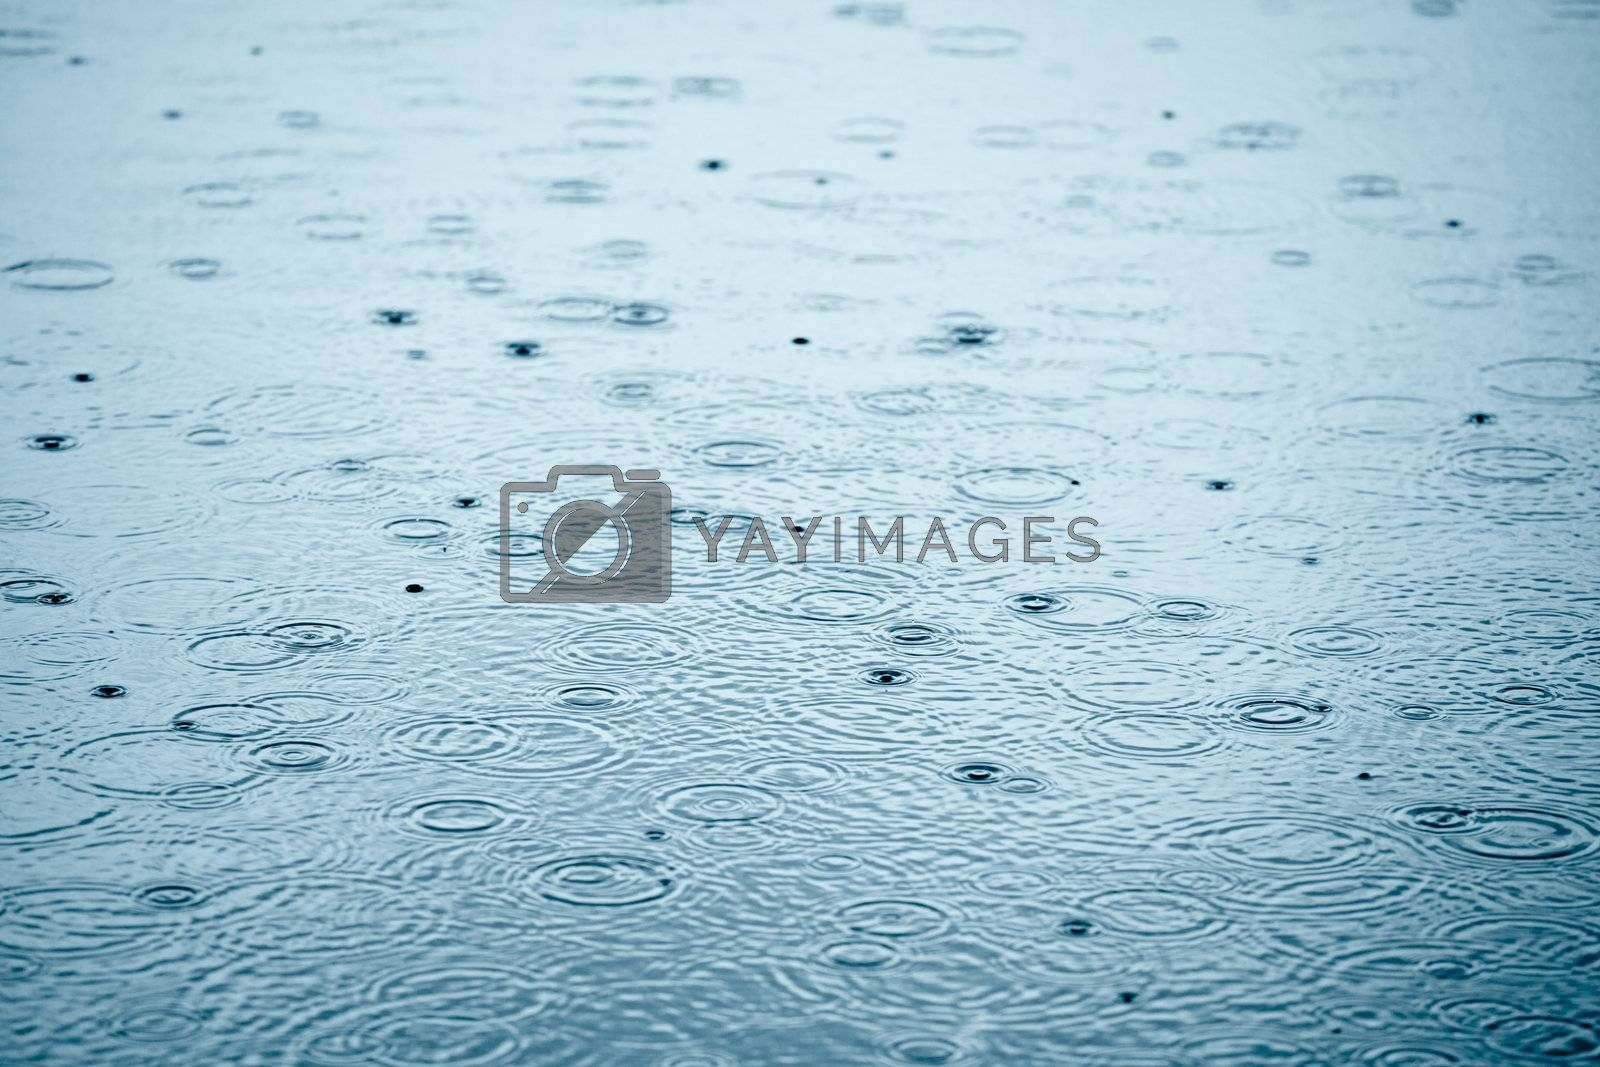 Rainy weather by naumoid